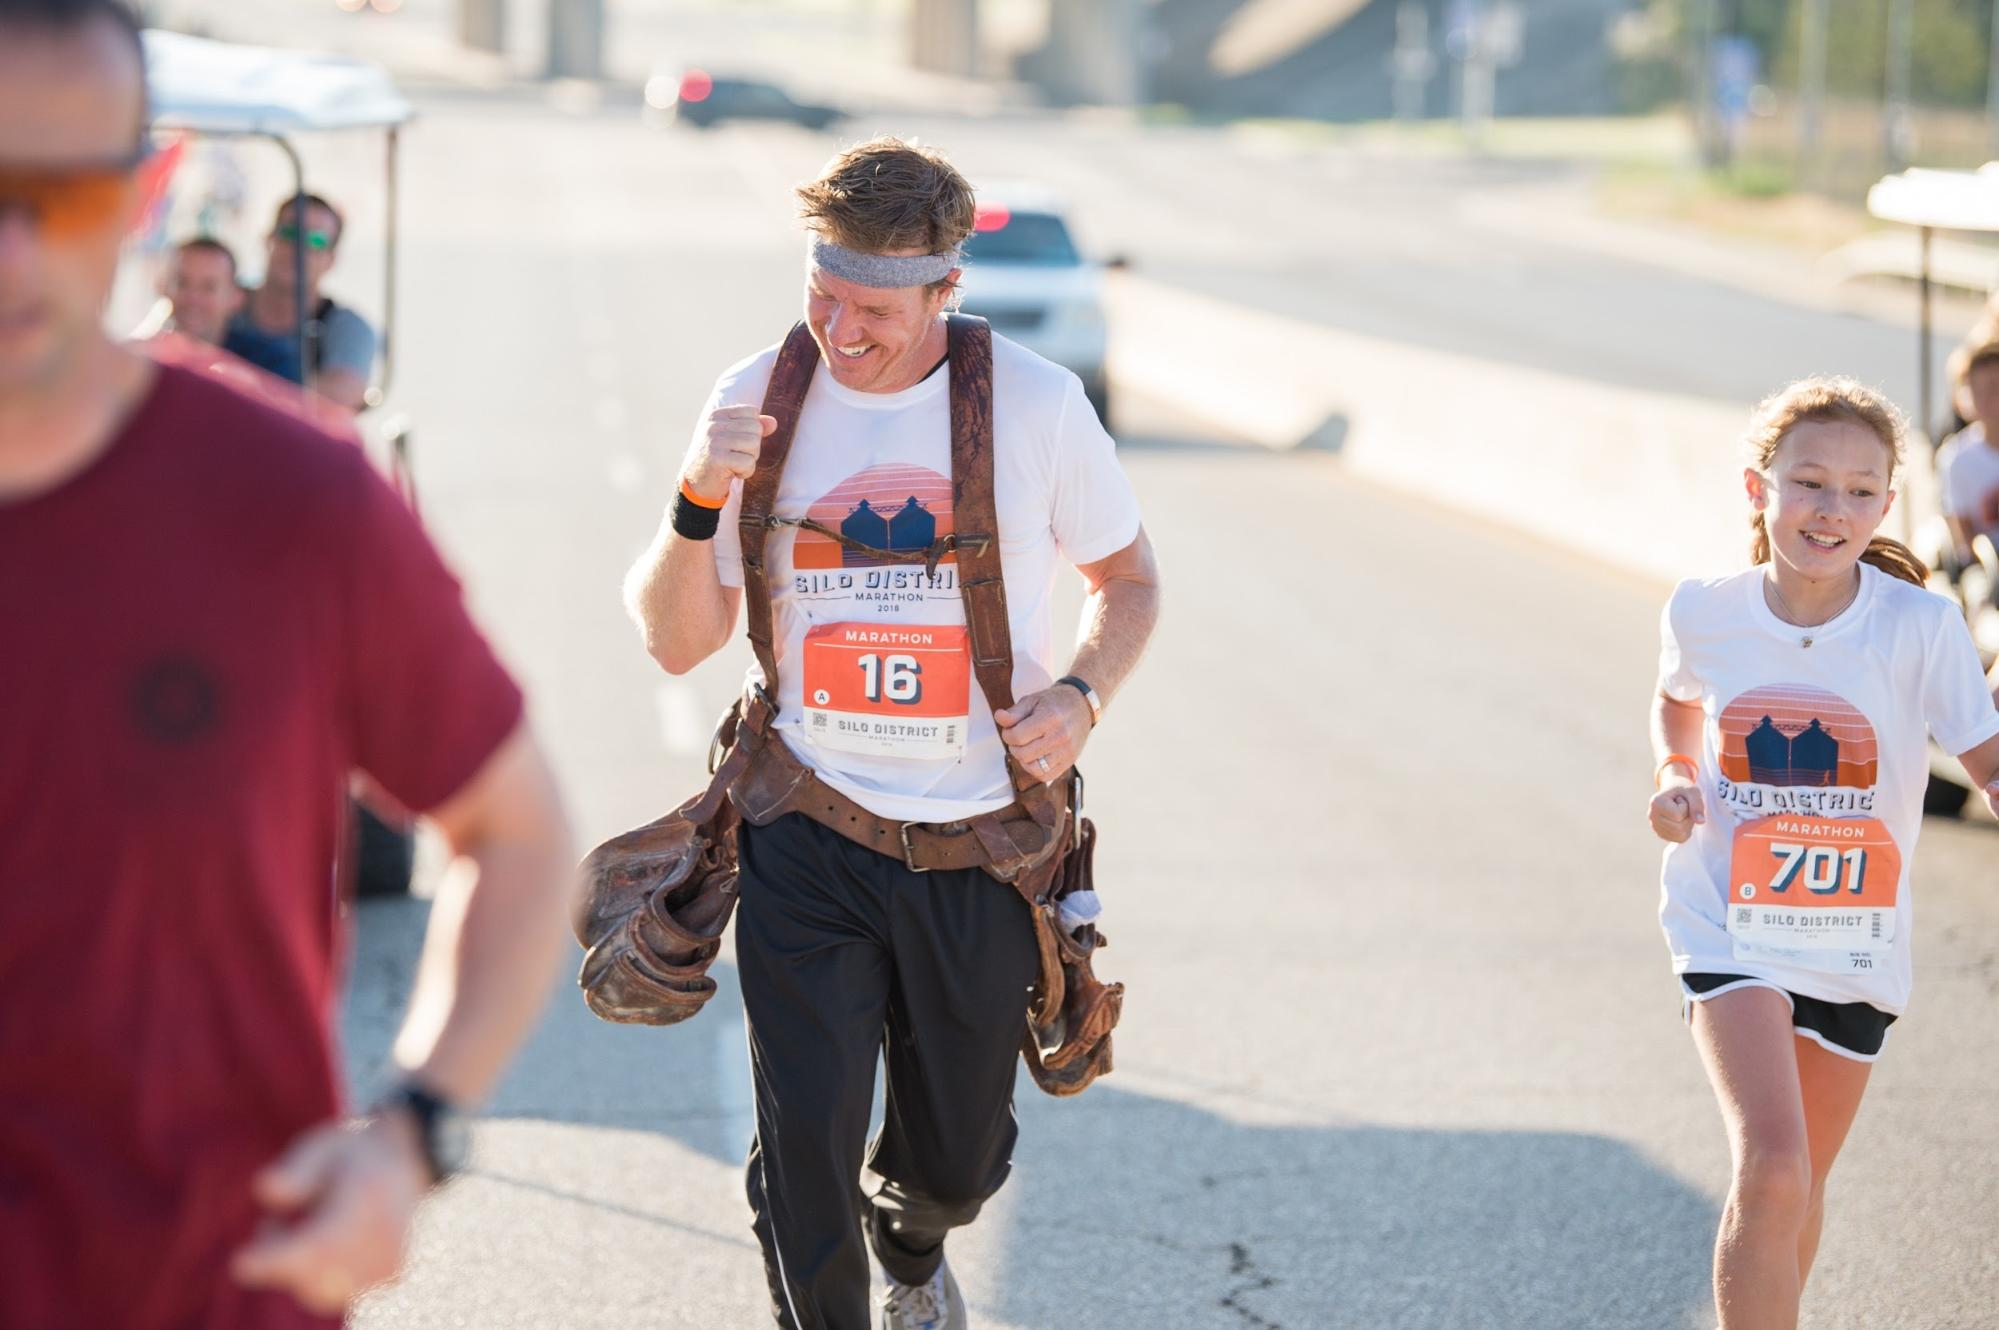 Silo-District-Marathon-Chip-Gaines-Running-With-Daughter-Toolbelt-Waco